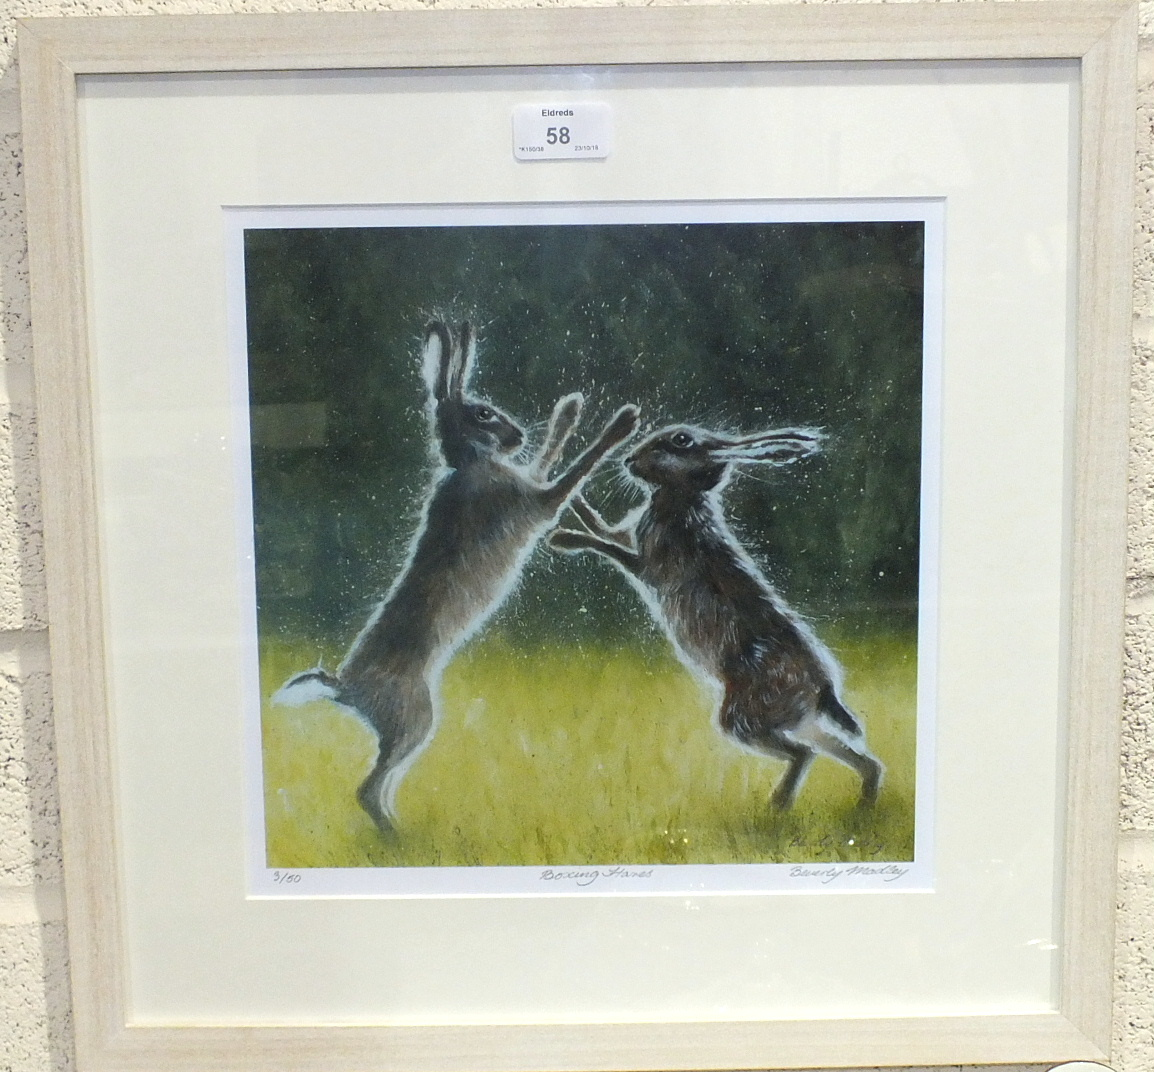 Lot 58 - After Beverley Madley, 'Boxing Hares', a signed and titled limited edition print, 3/50, 29 x 29cm